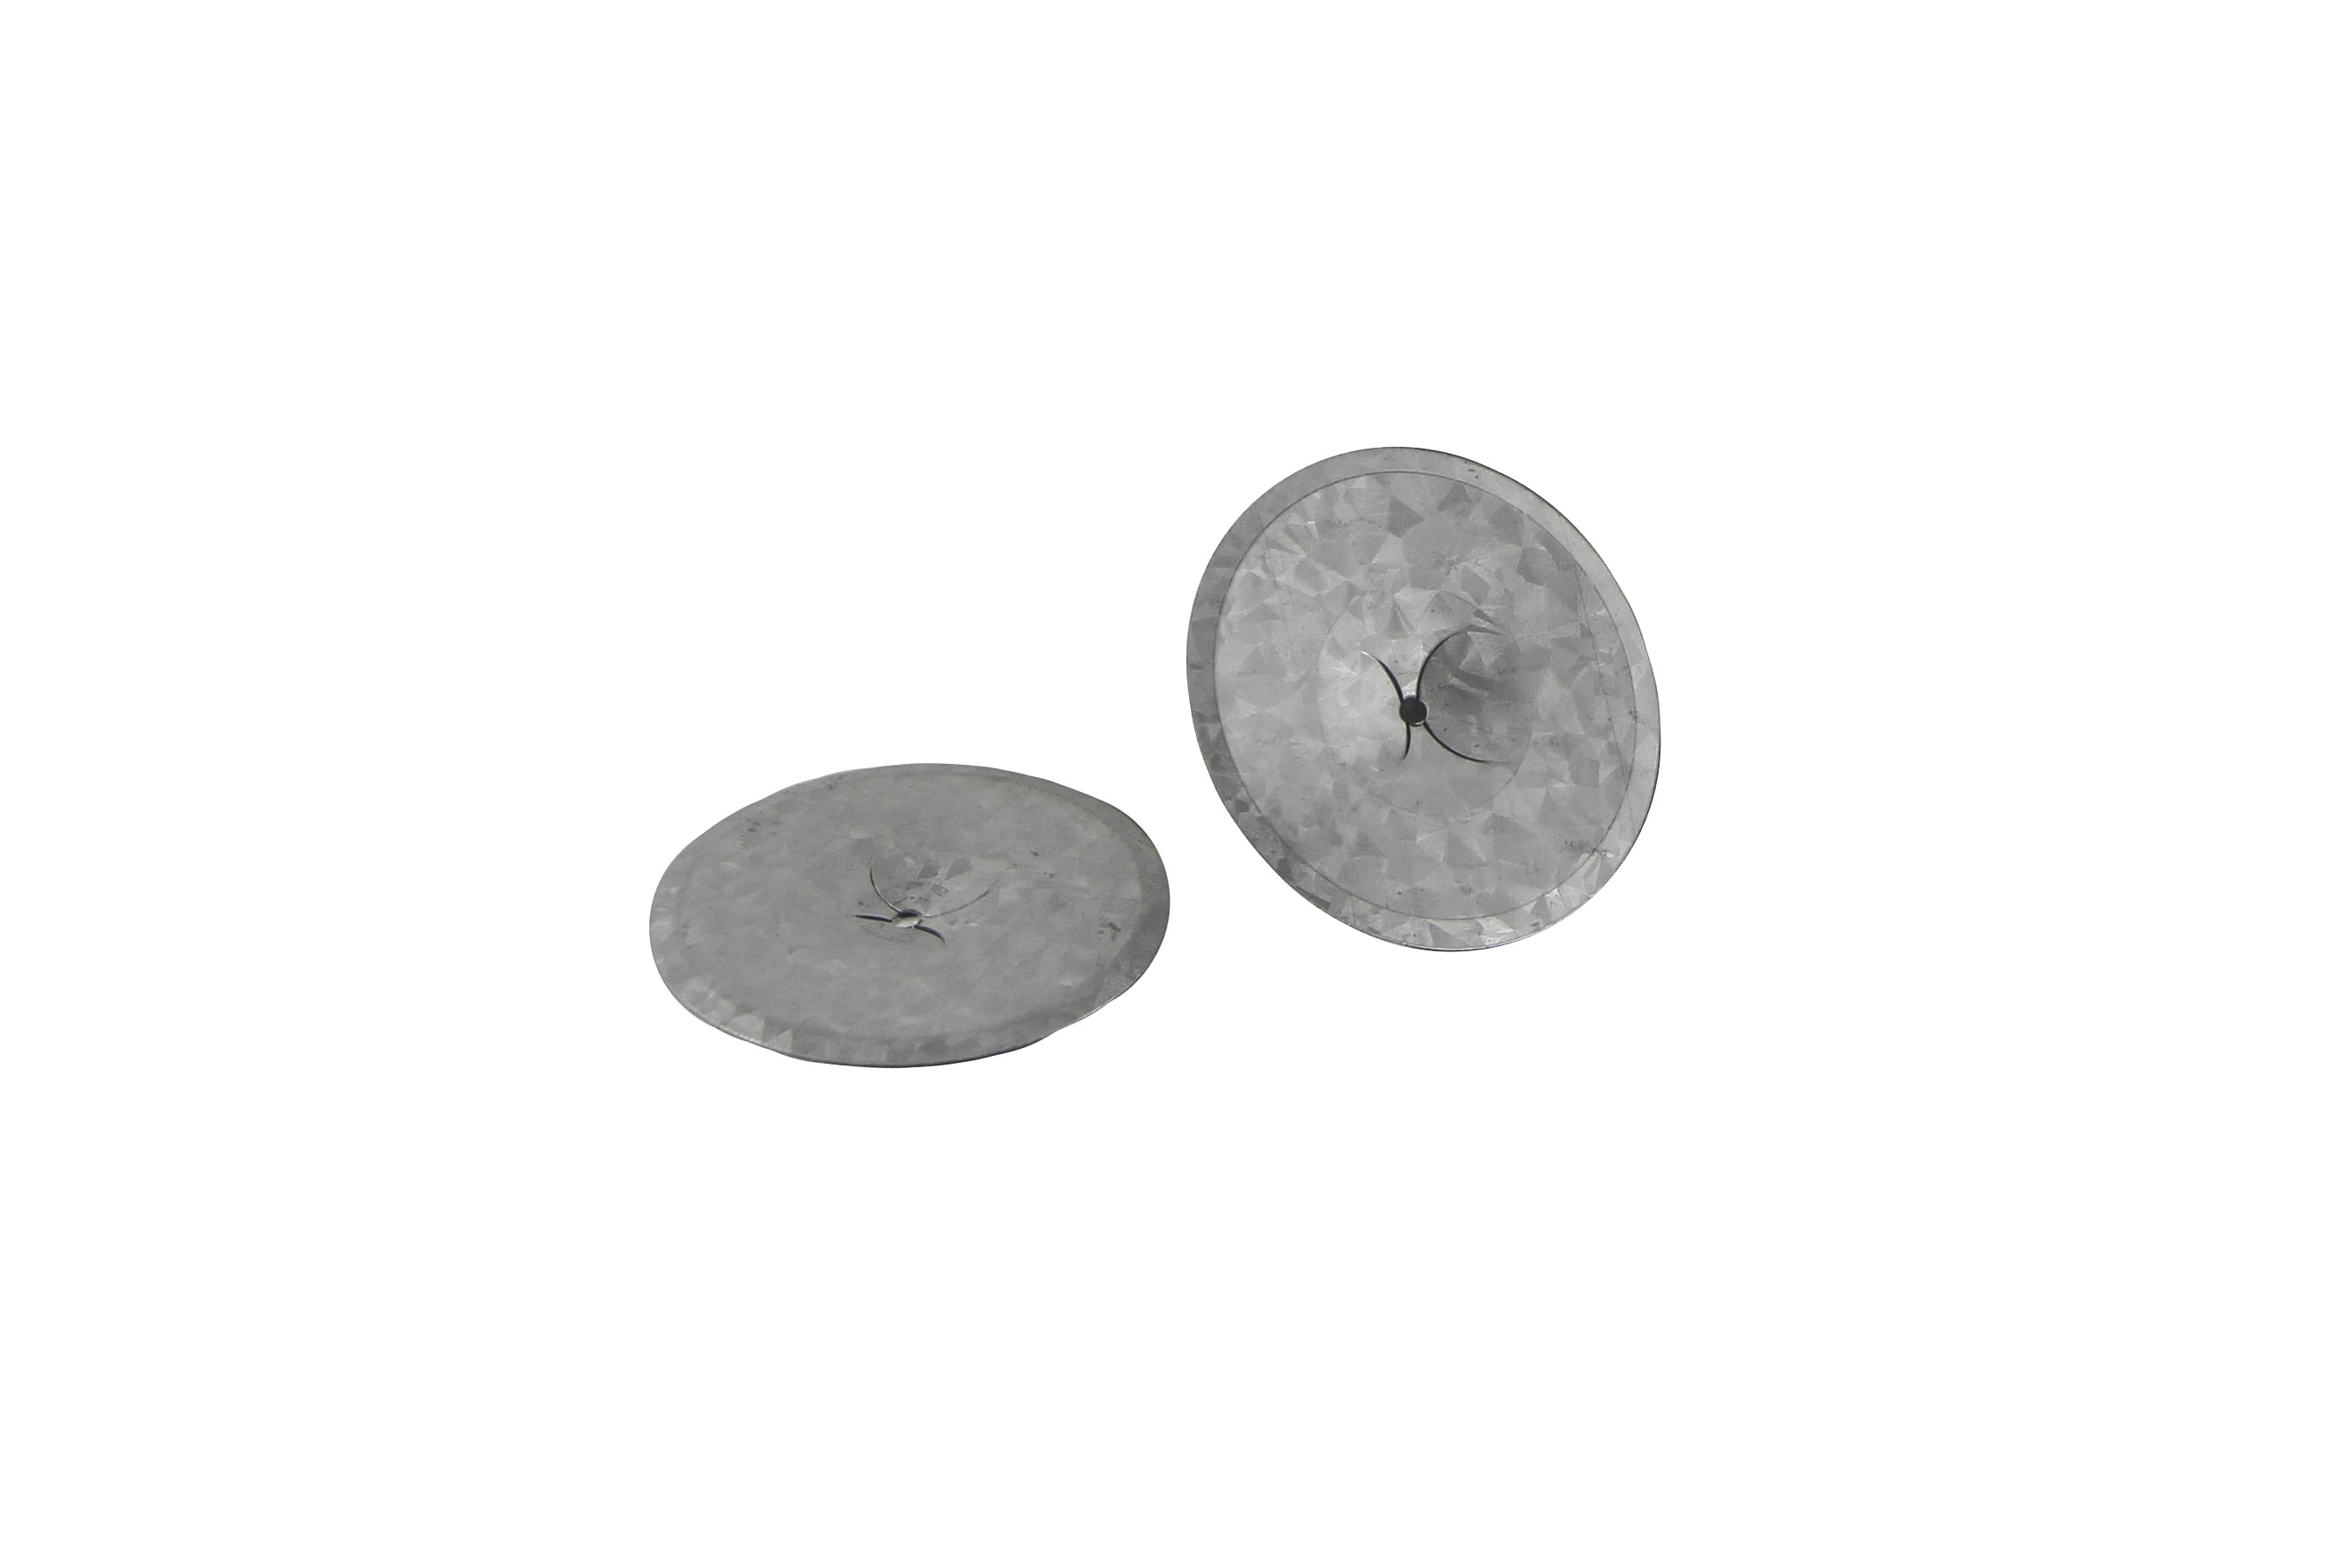 Safety disc CL-0-30 - 30 mm